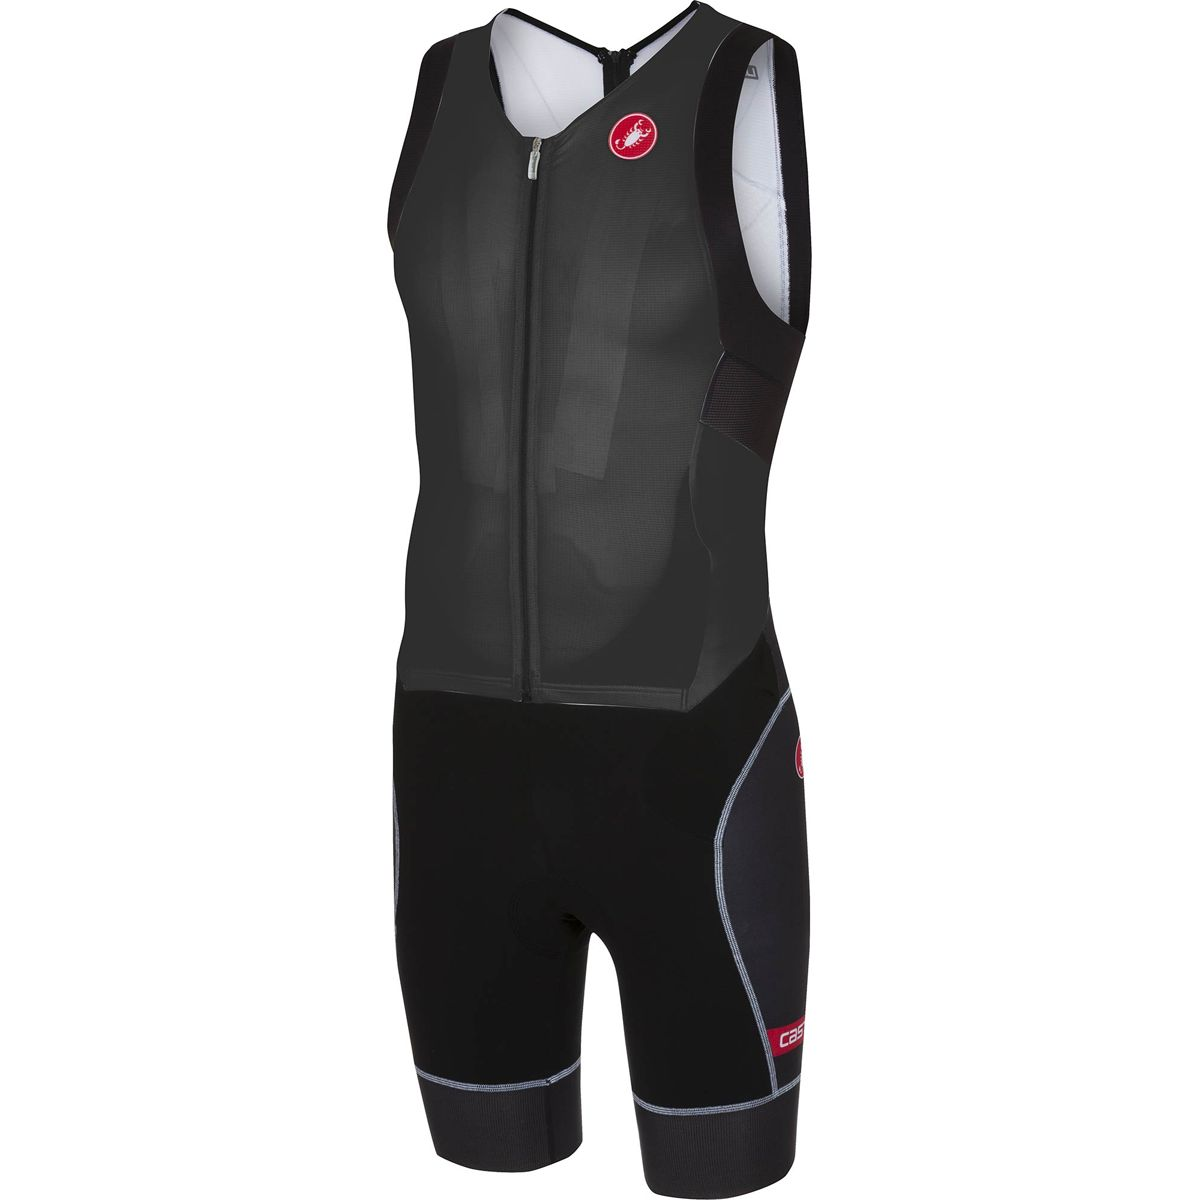 FREE SANREMO SUIT SLEEVELESS Tri Suit